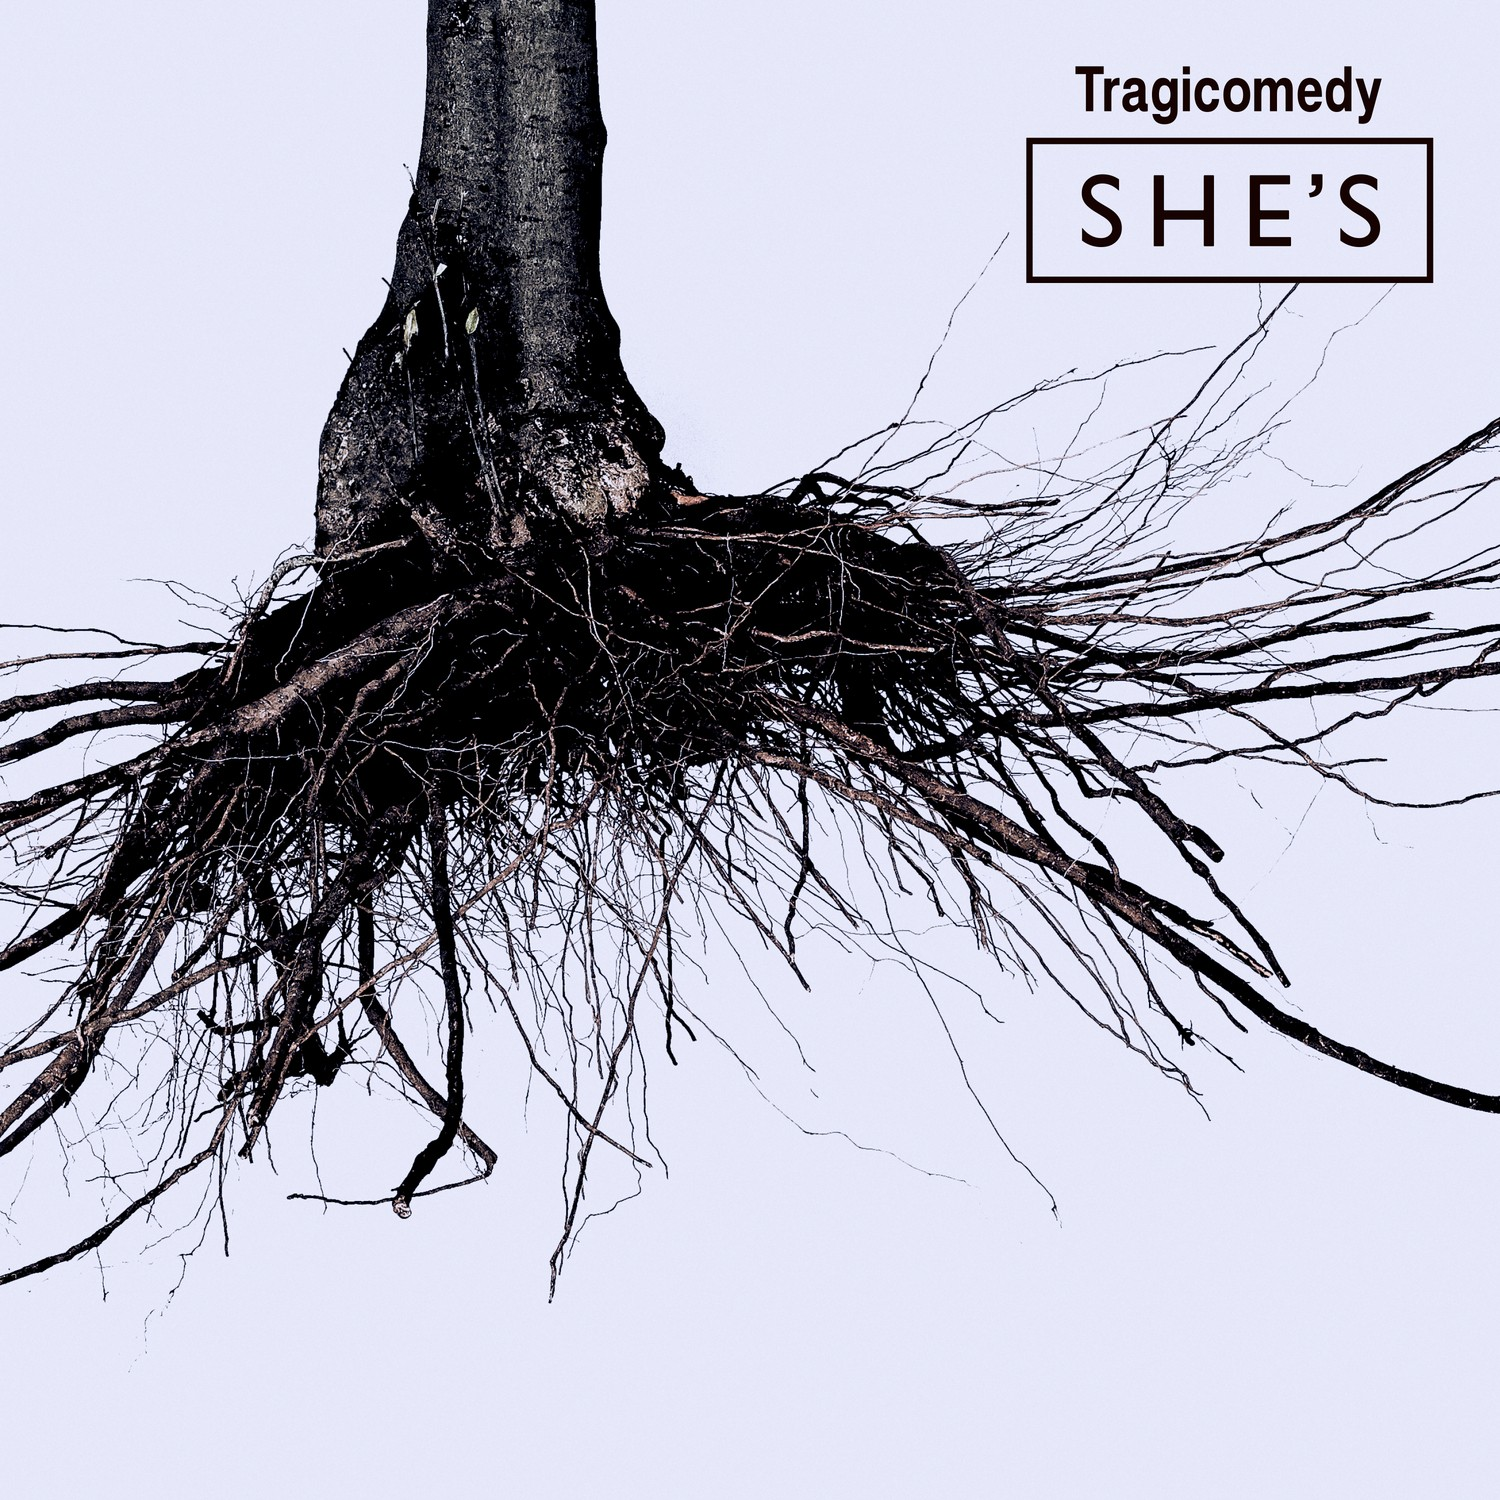 Download SHE'S Tragicomedy Album